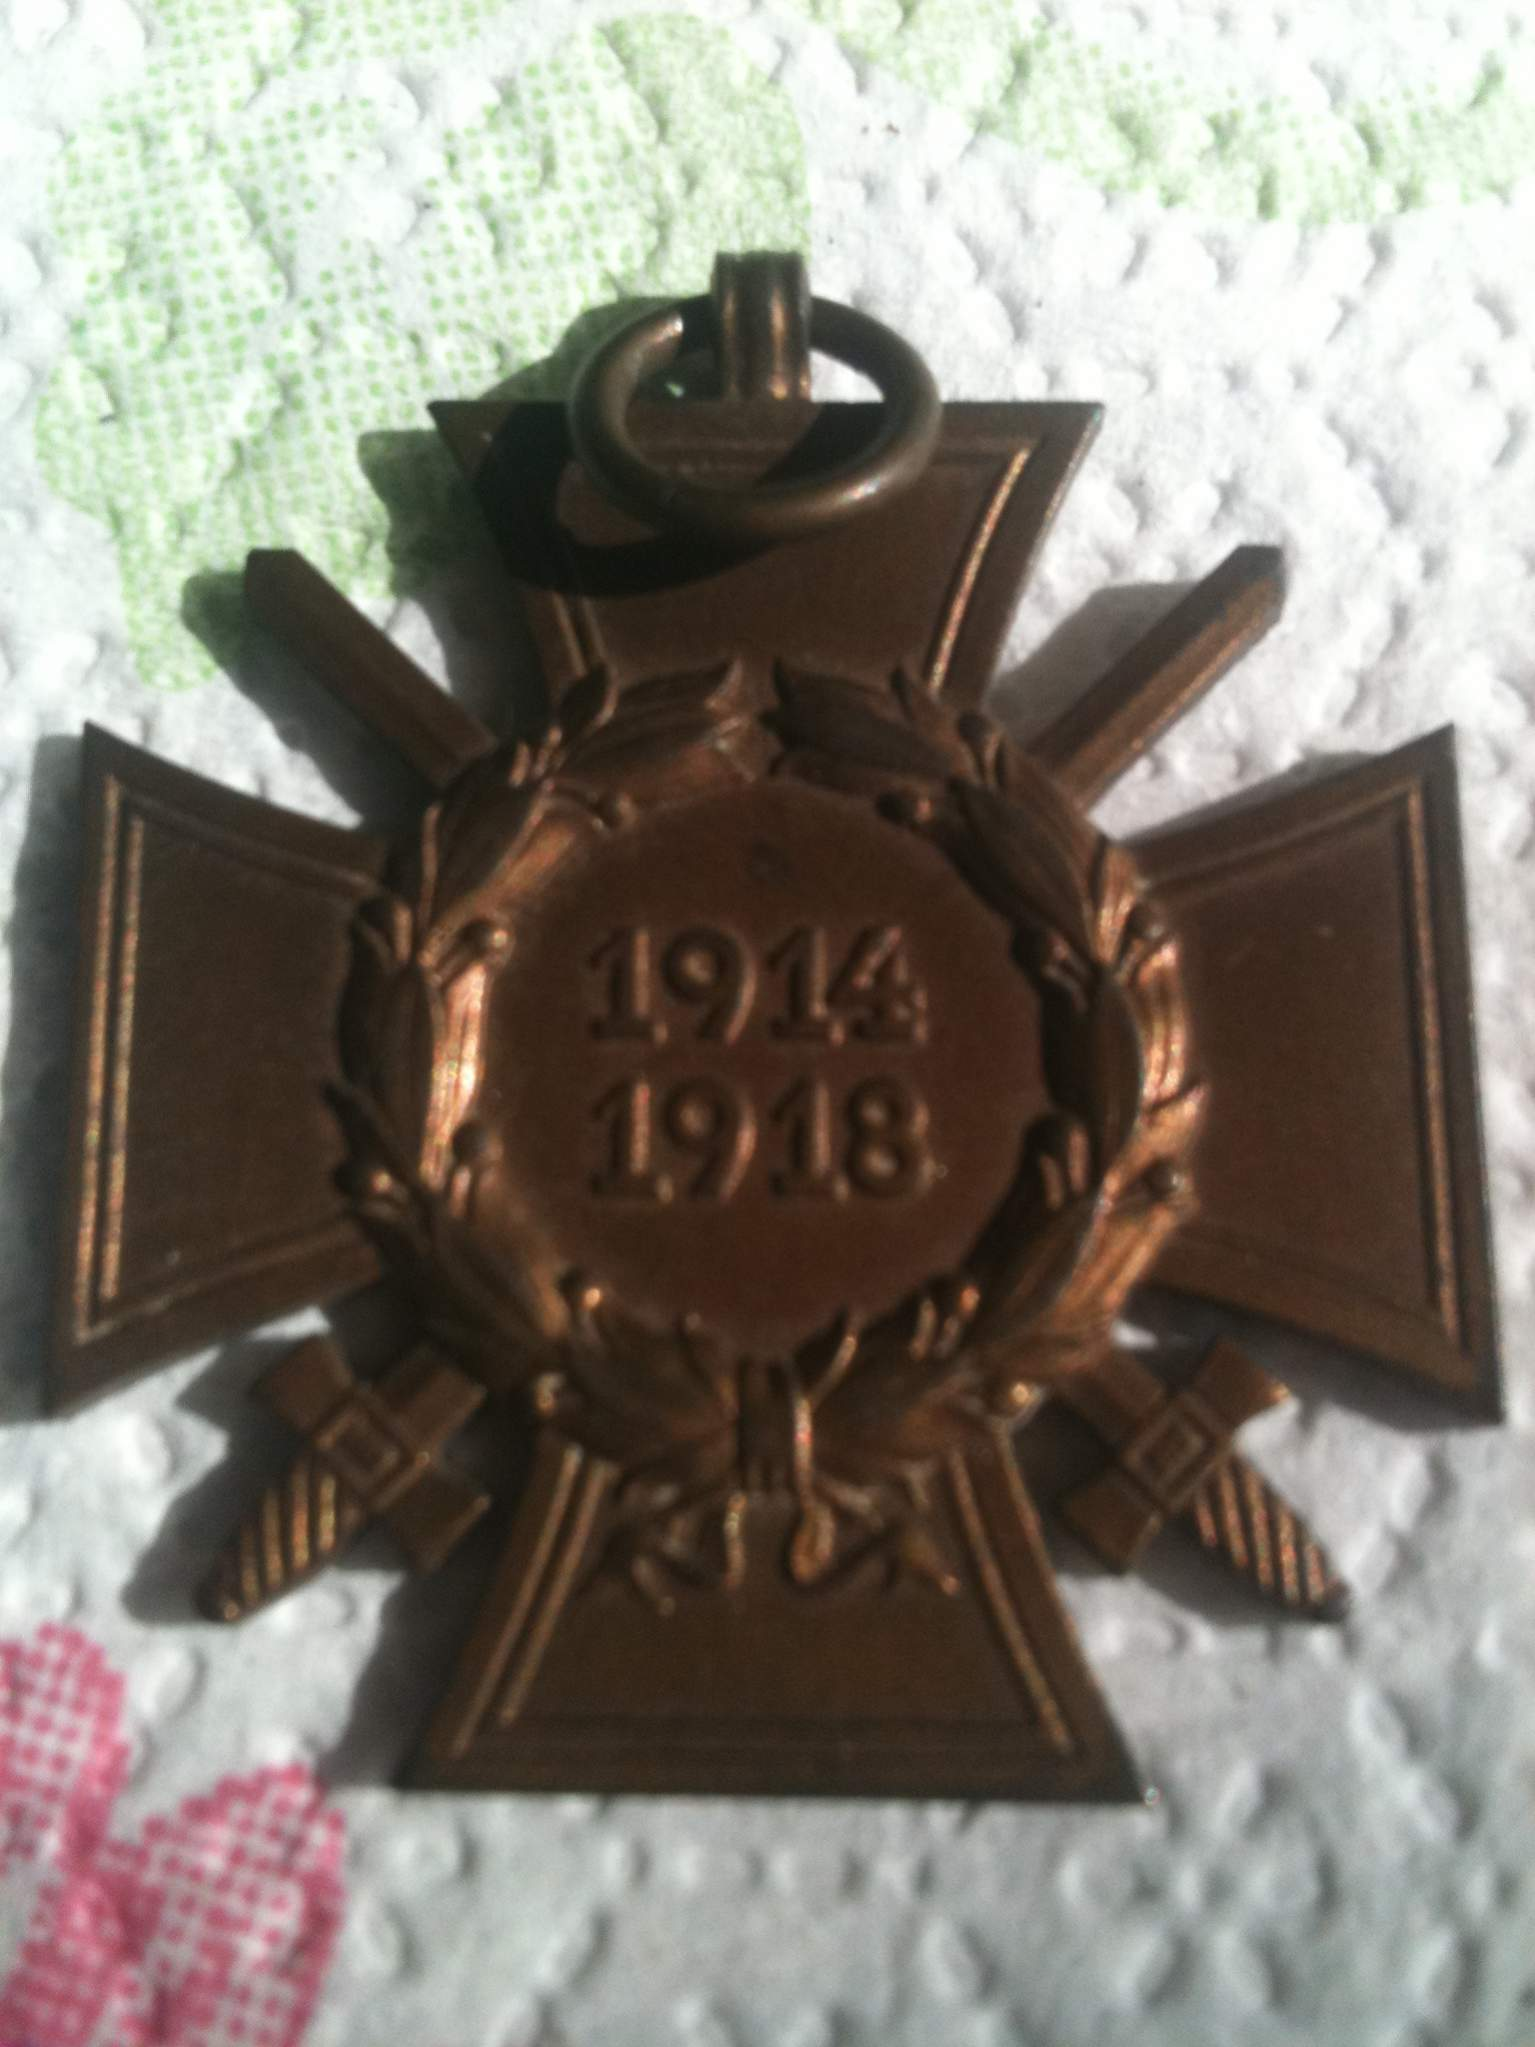 German Nazi Medals, Patches, and Pins  Rare? Need help